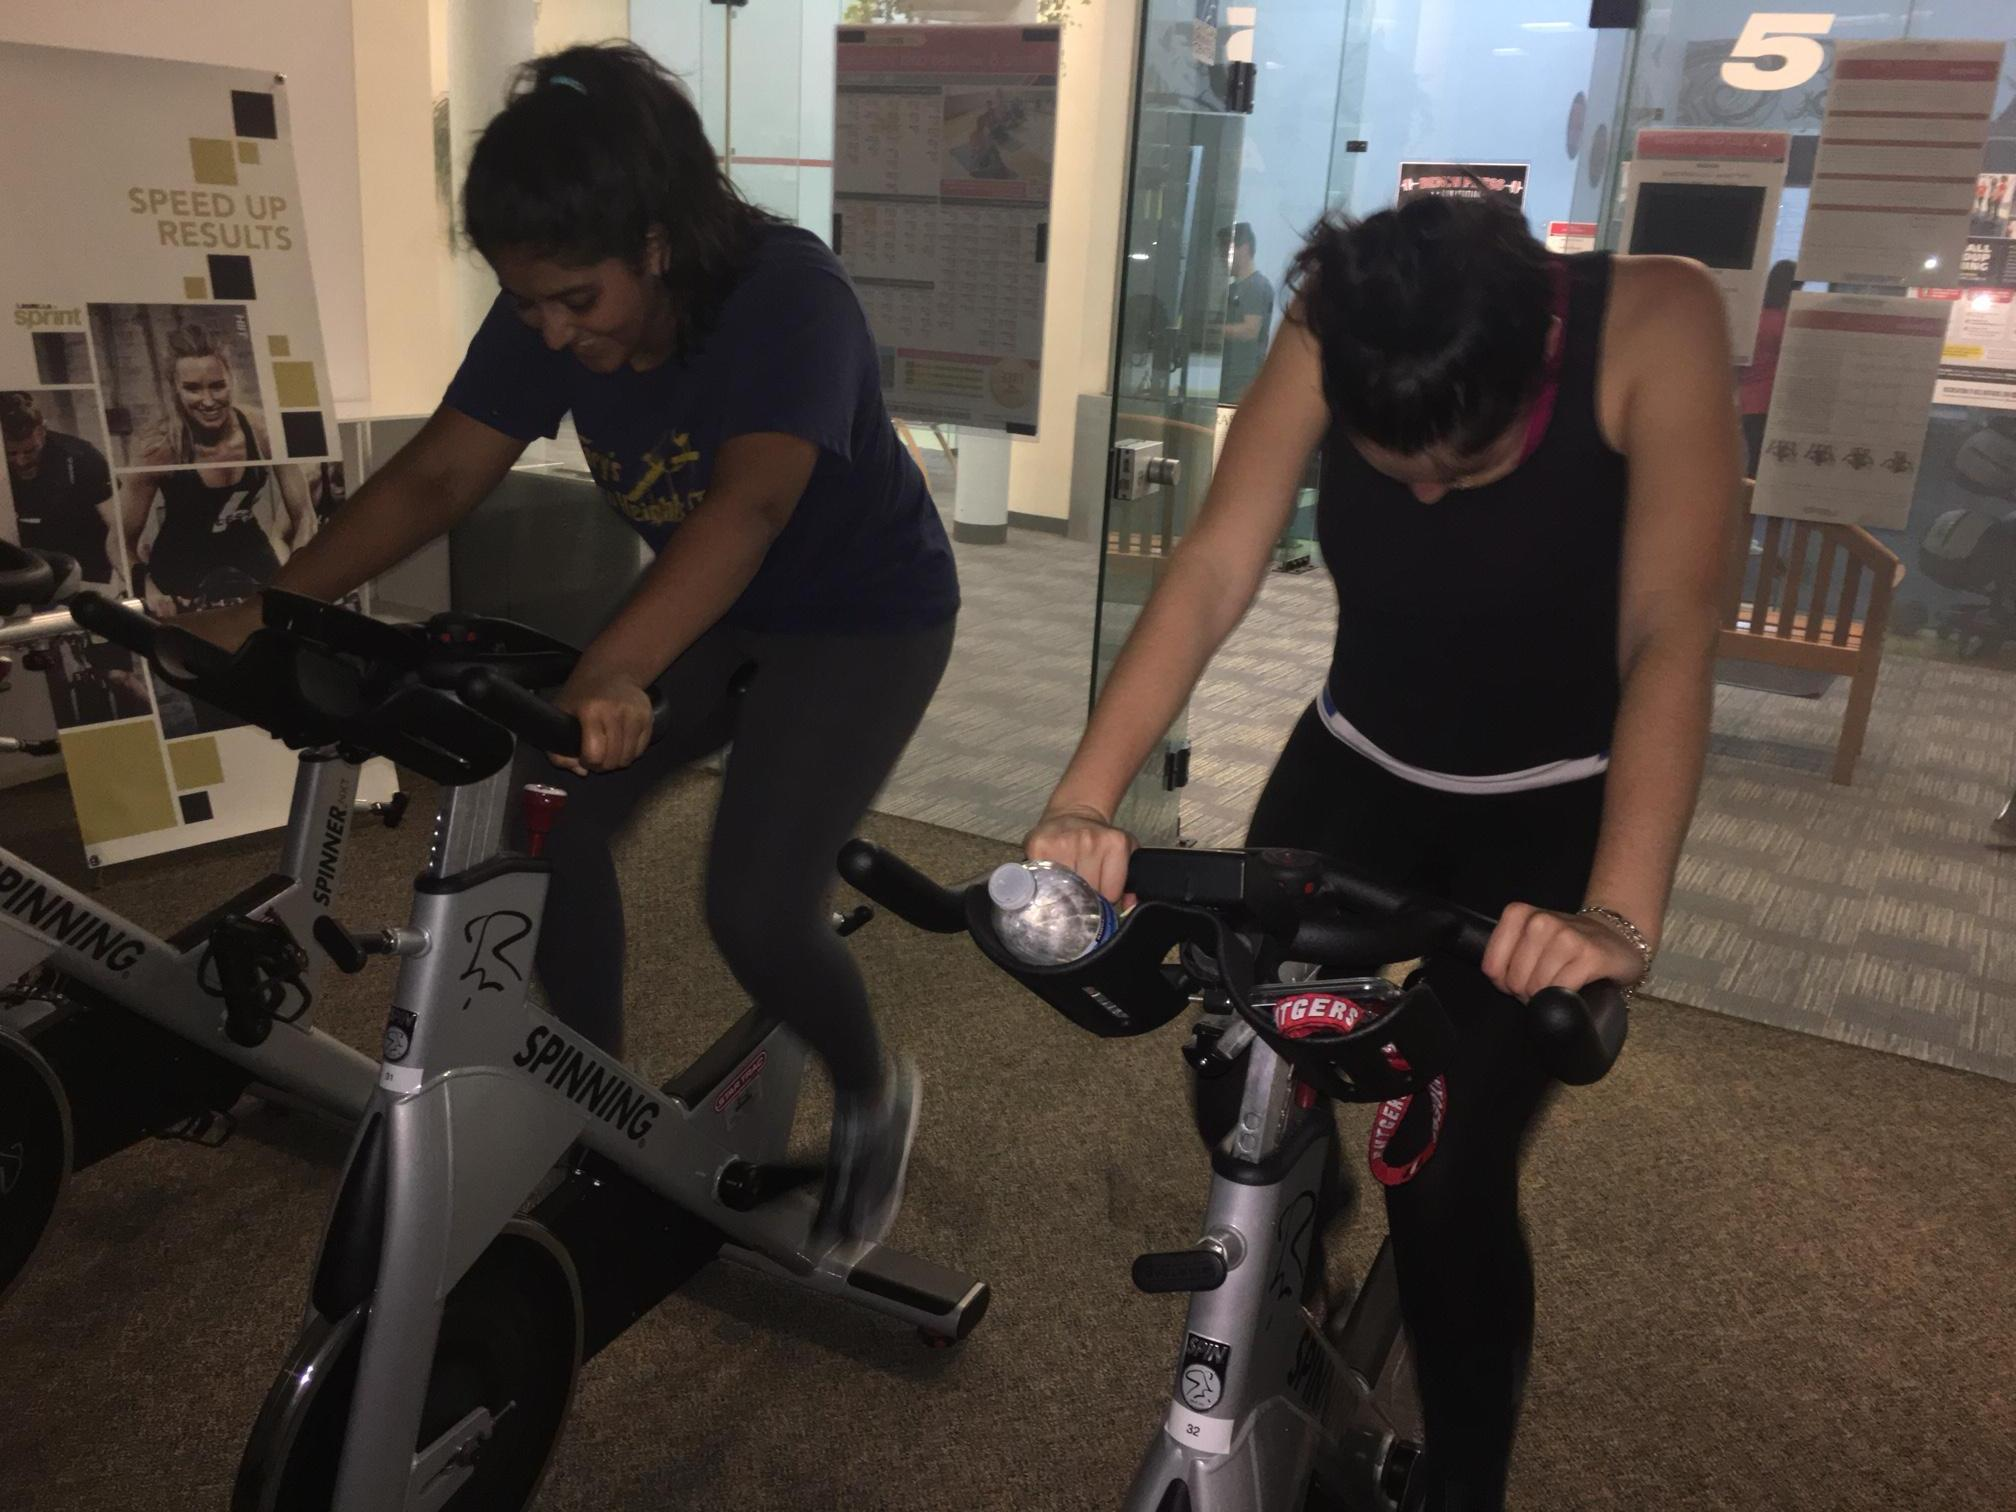 Two spin class lovers trying to go for the gold.